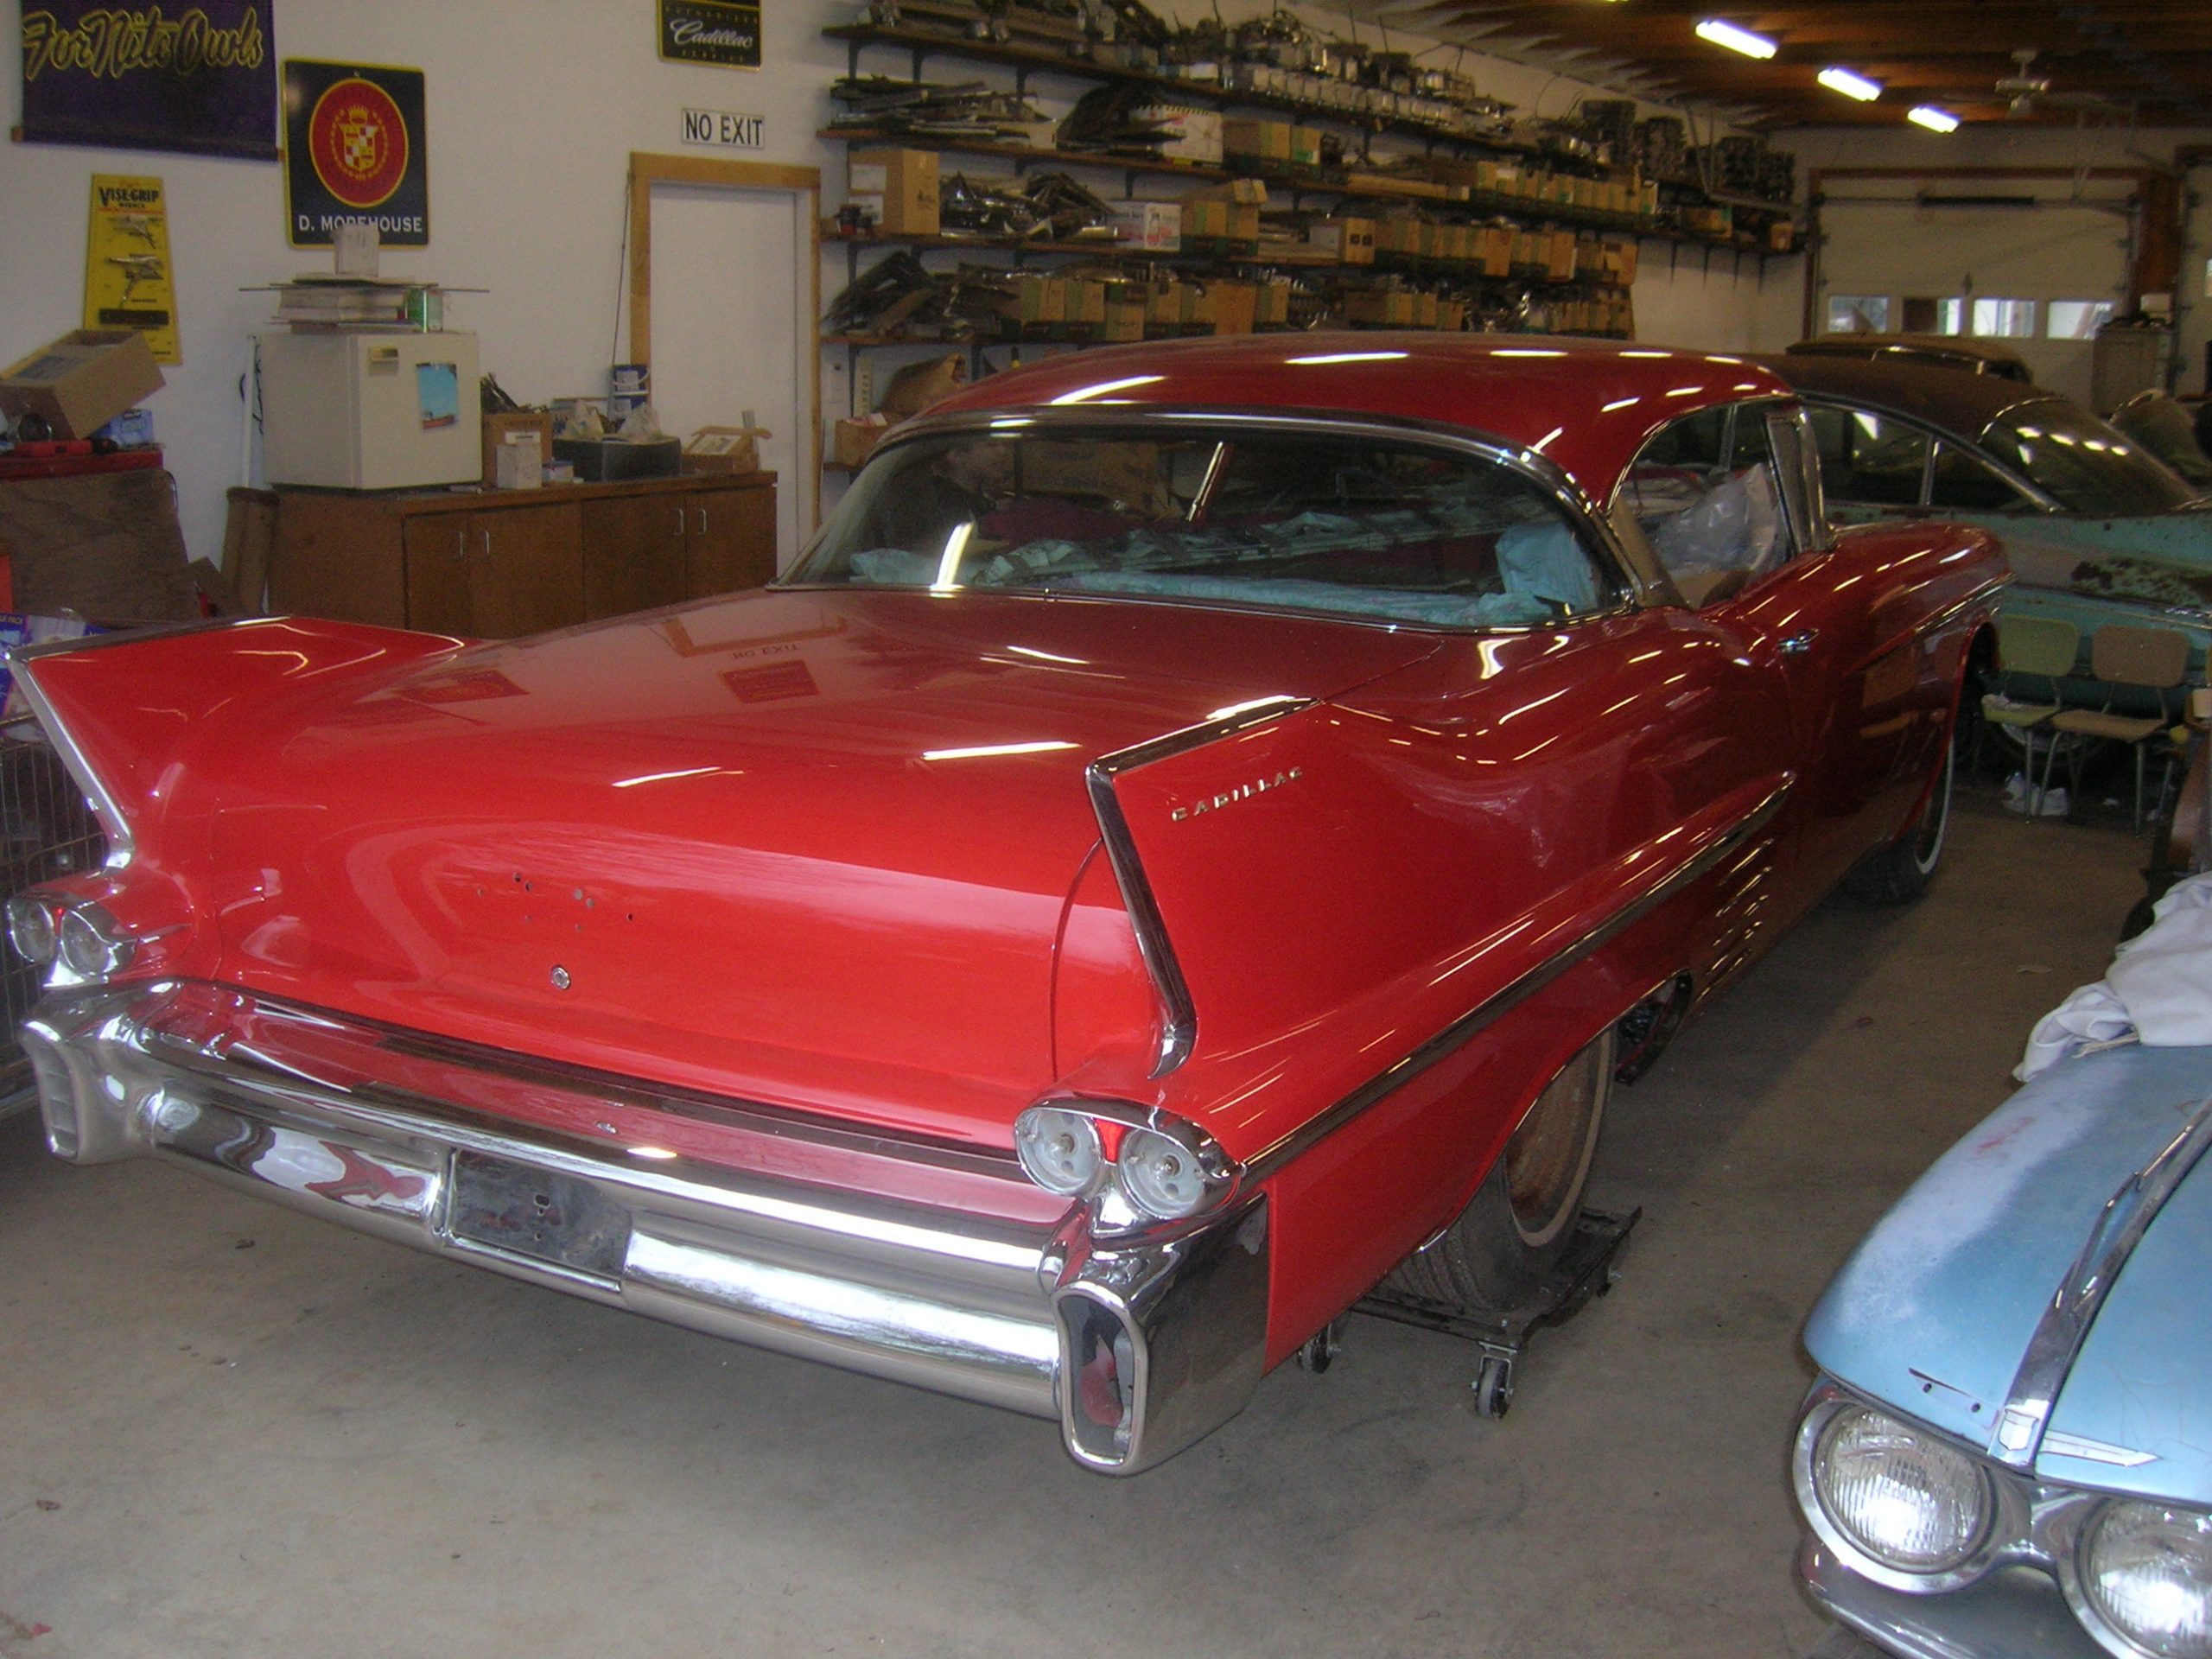 red old vintage cadillac fins rear three-quarter